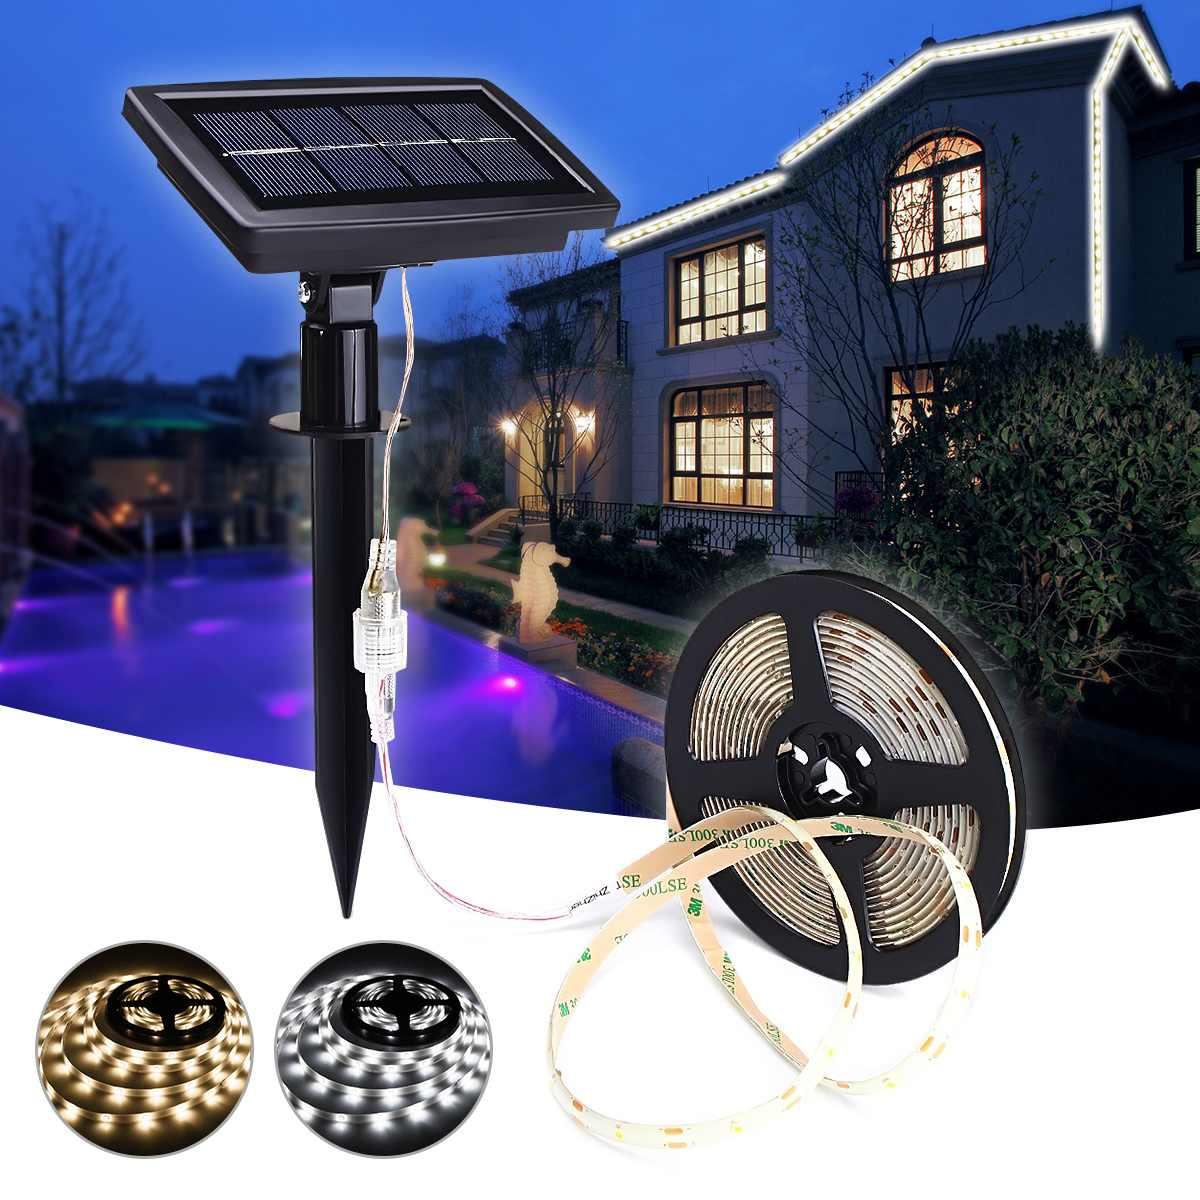 5m Waterproof Solar LED Strip Light 2835smd IP65 Pure White/warm White Single Color LED StripOutdoor Garden Decor